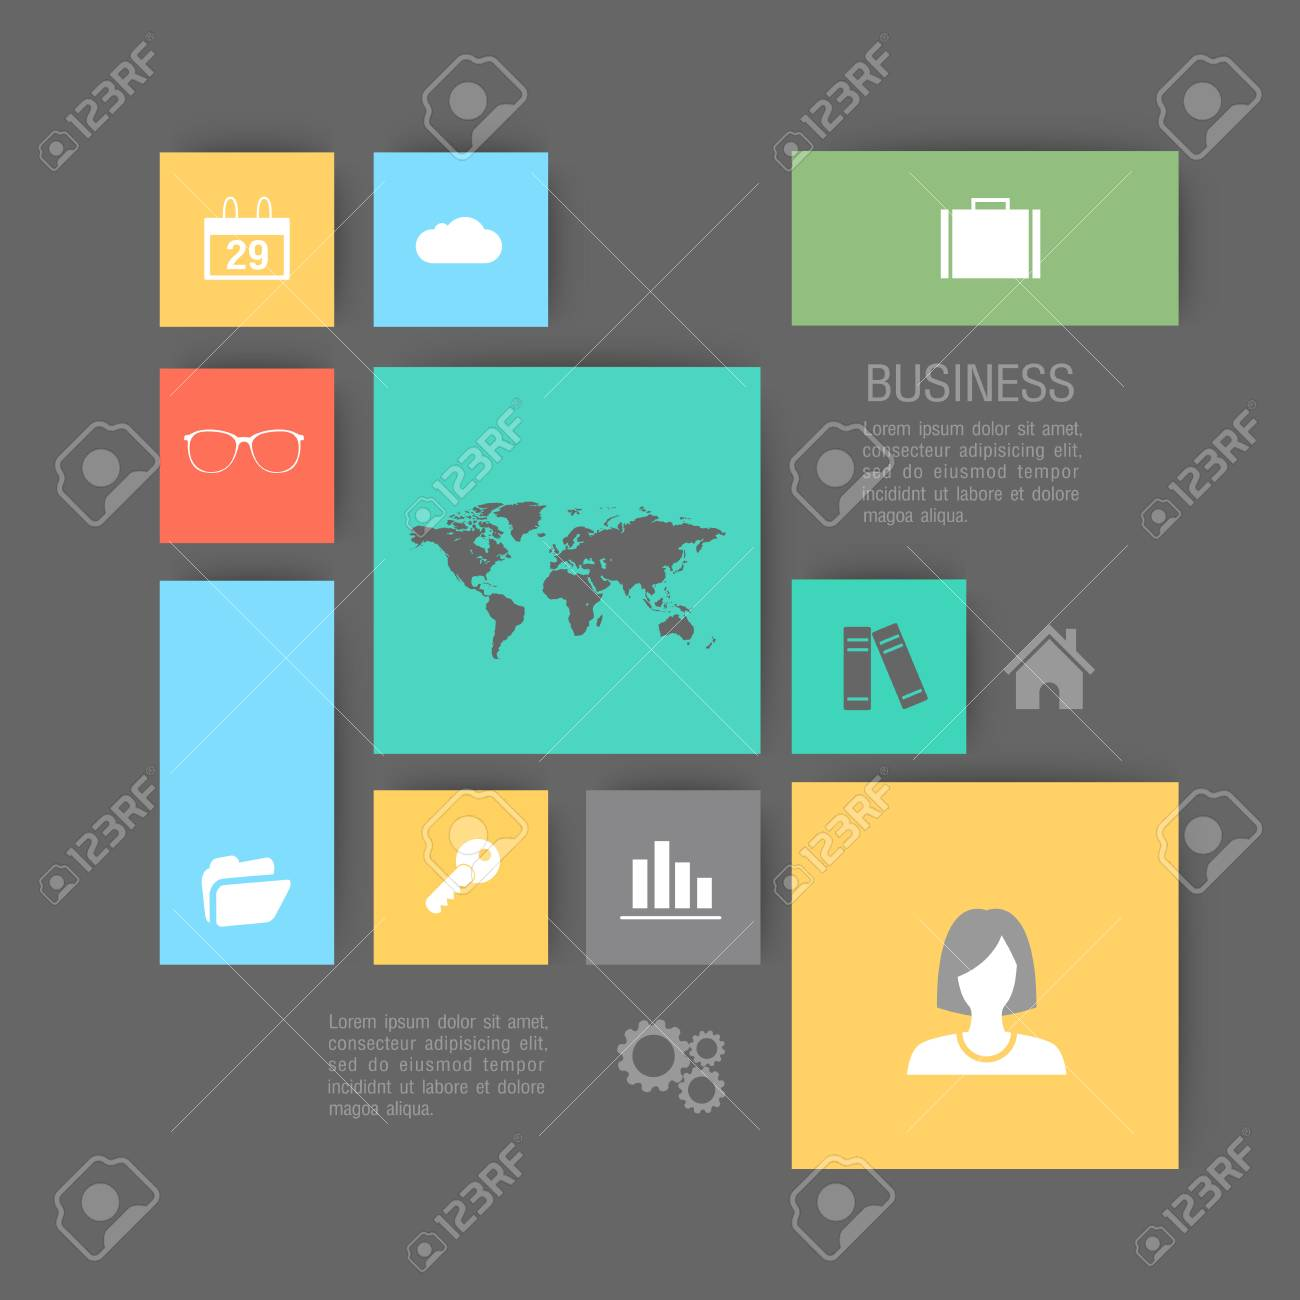 Modern flat icons vector collection business. - 40592525